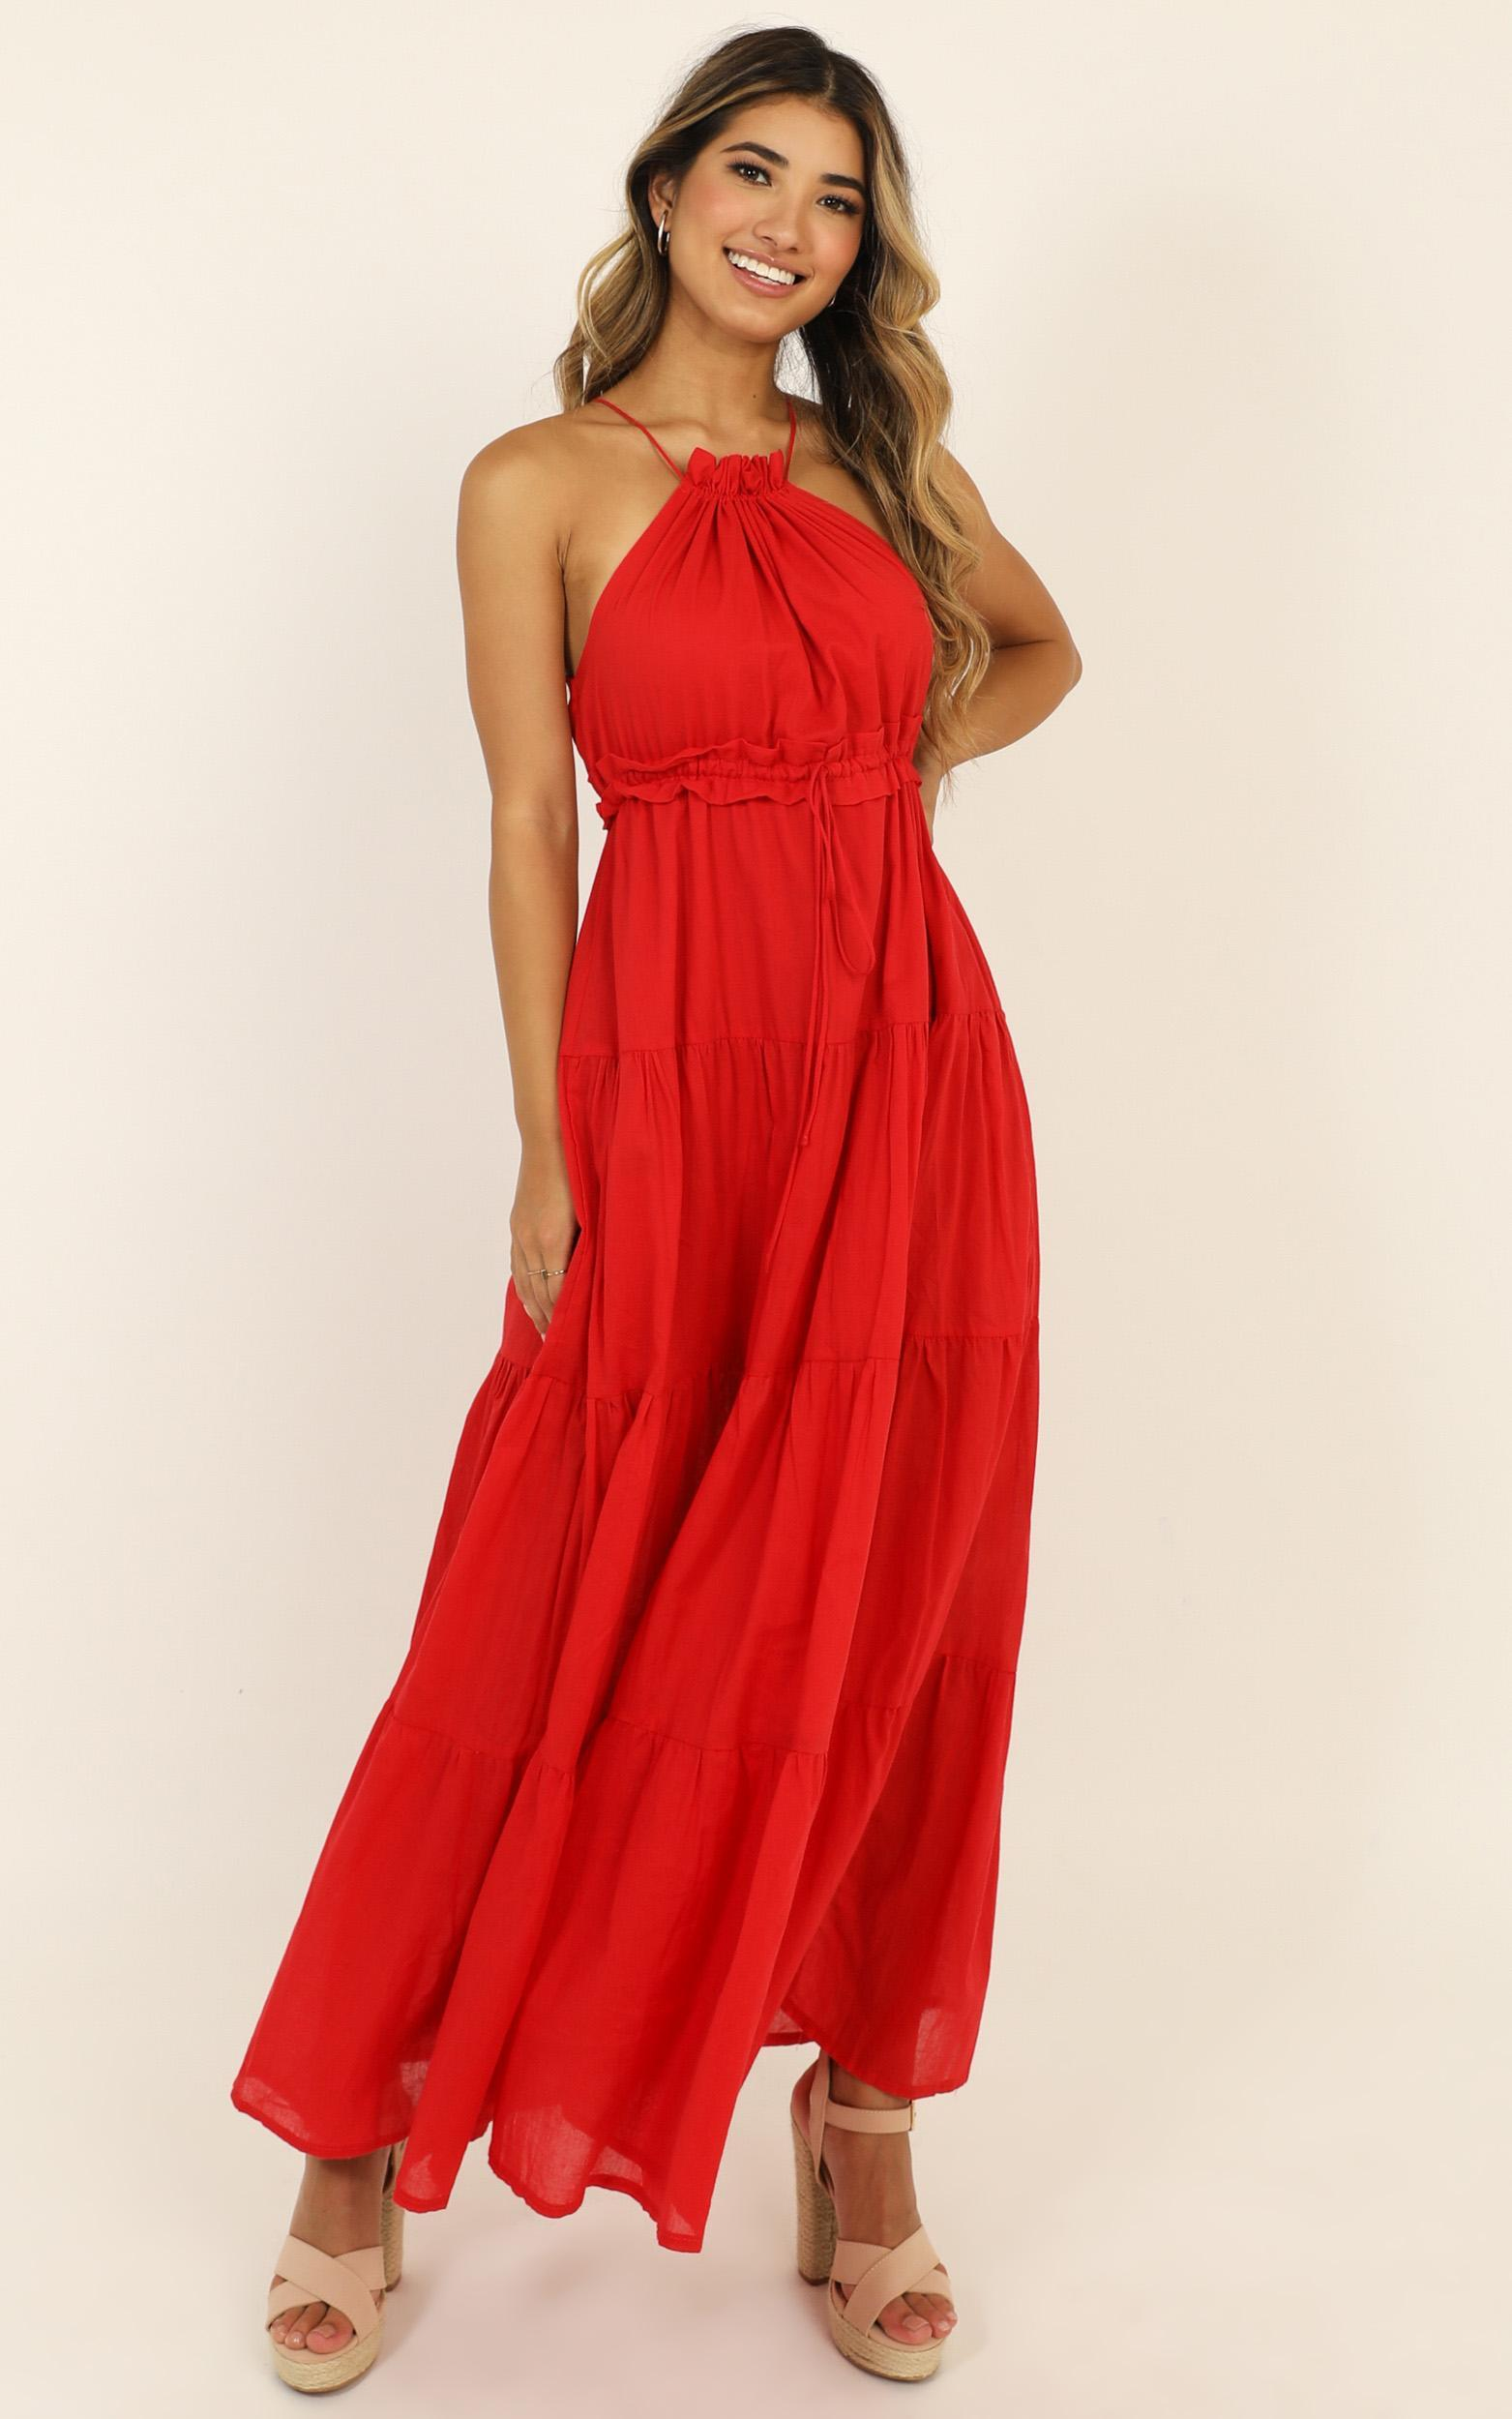 True Confidence Dress in red - 12 (L), Red, hi-res image number null